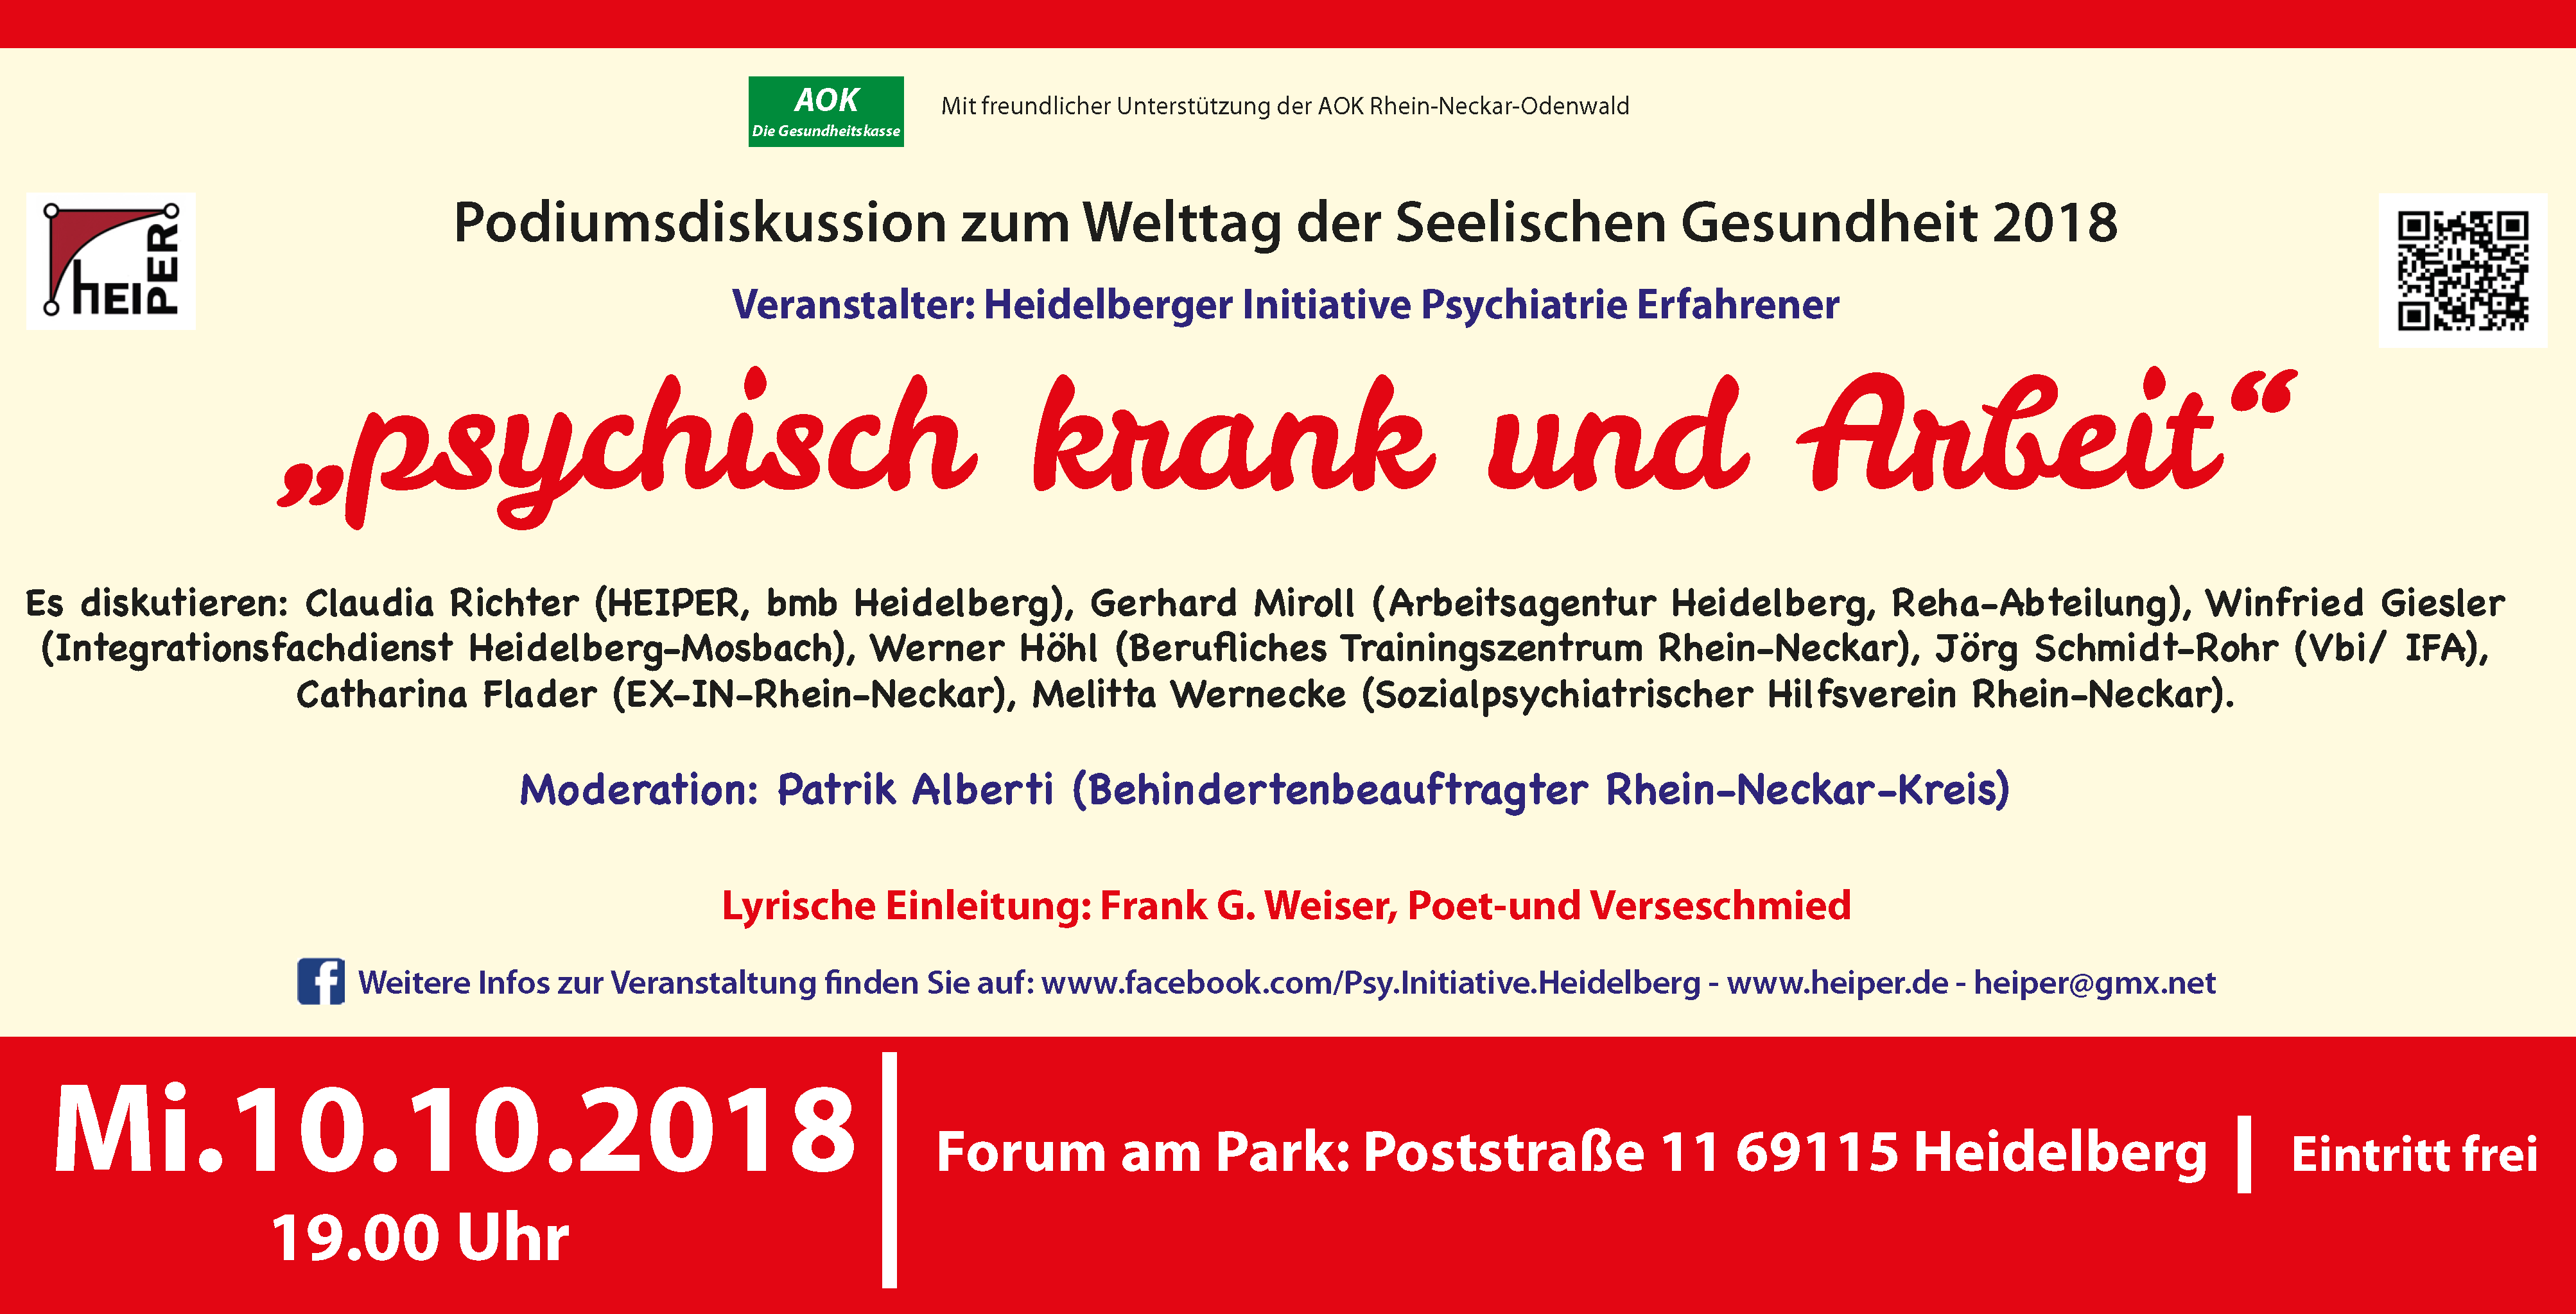 Pressetext Podiumsdiskussion 2018 10 10 Flyer